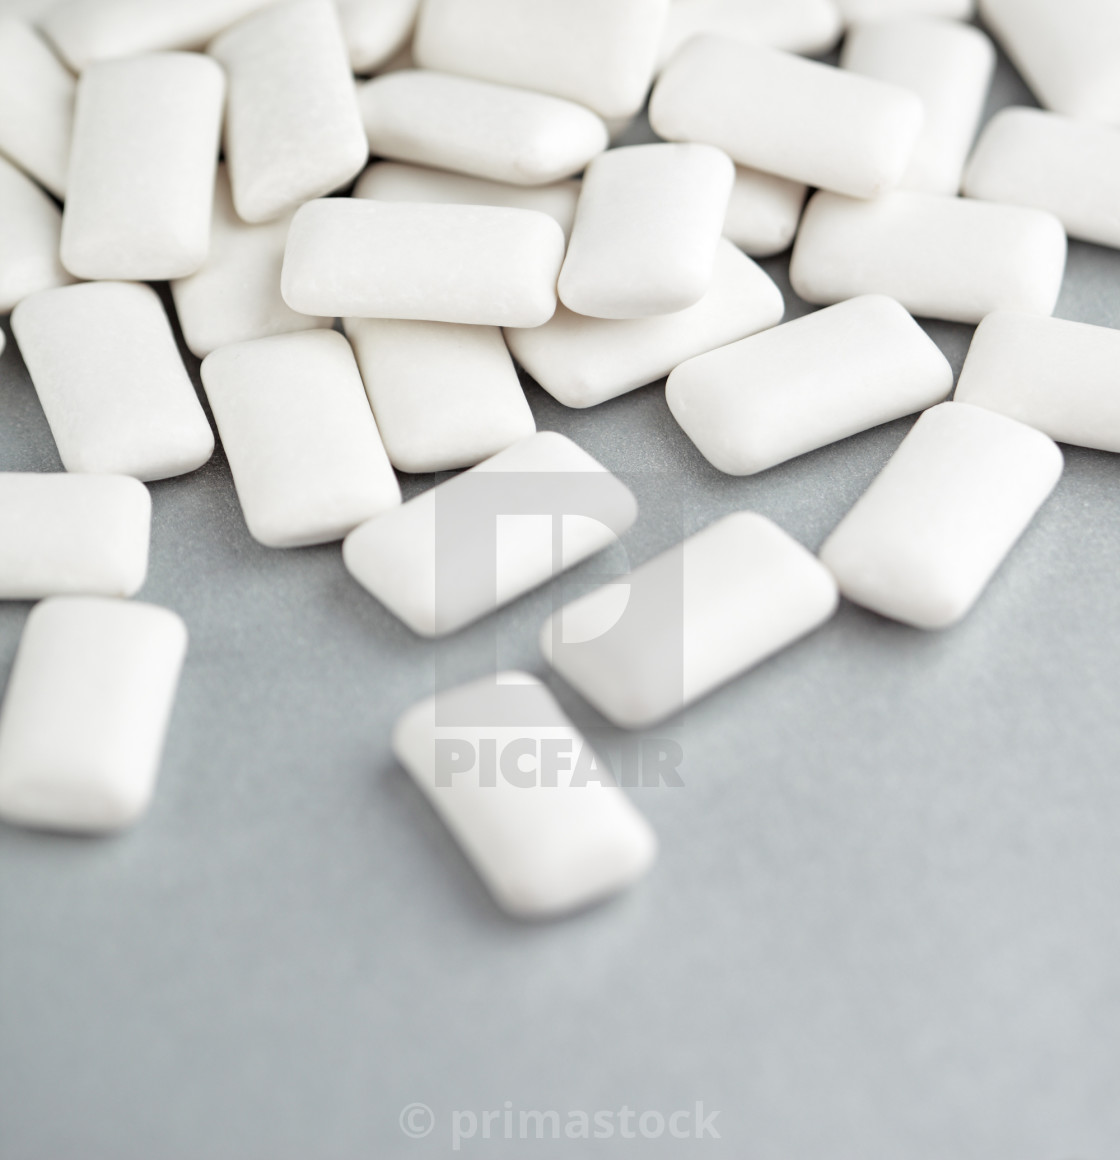 """Chewing gum"" stock image"